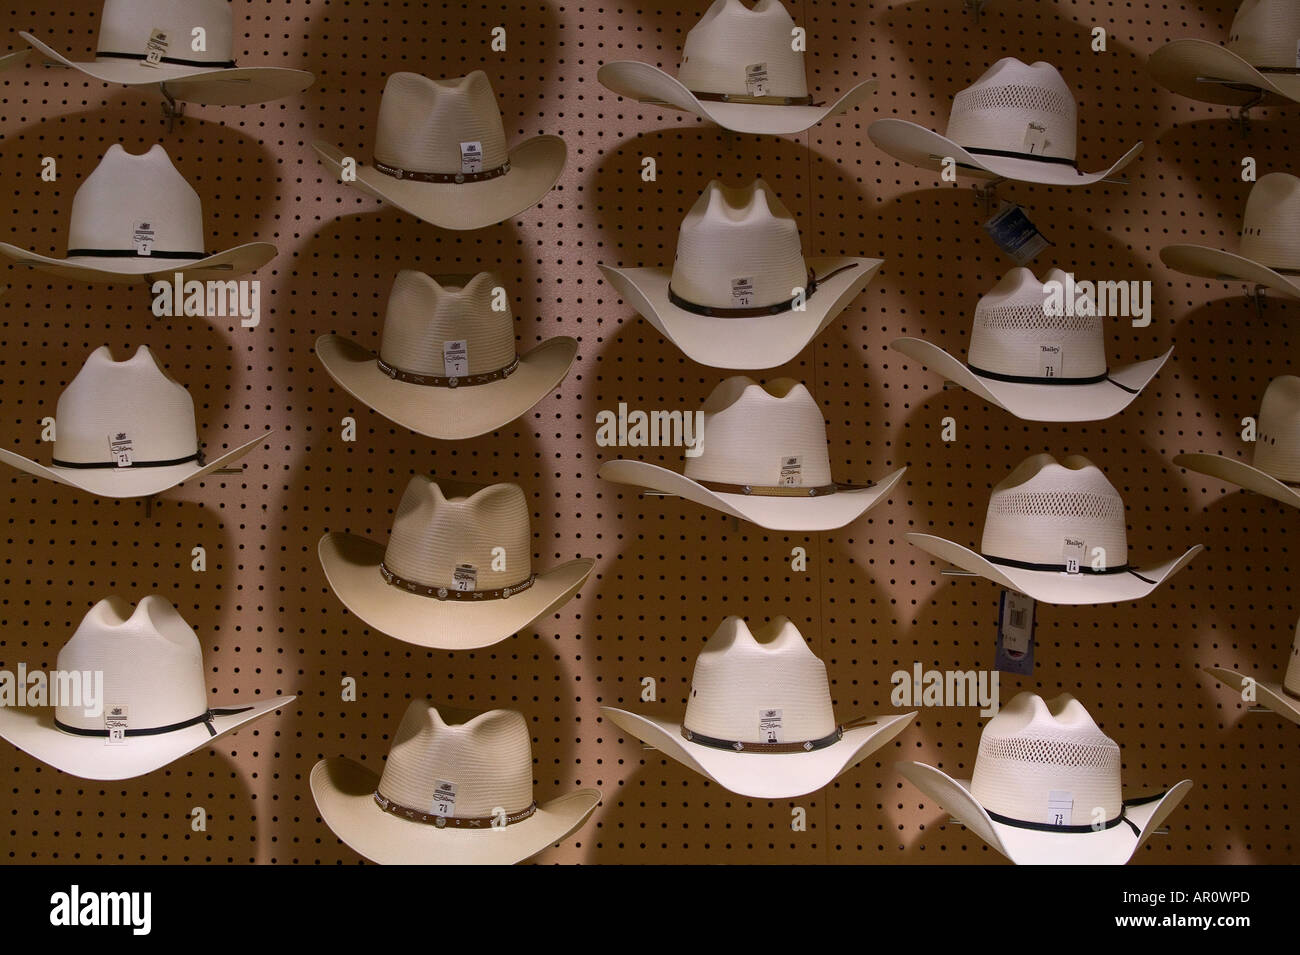 Cowboy Hat Shop Stock Photos   Cowboy Hat Shop Stock Images - Alamy dc087c45b7a